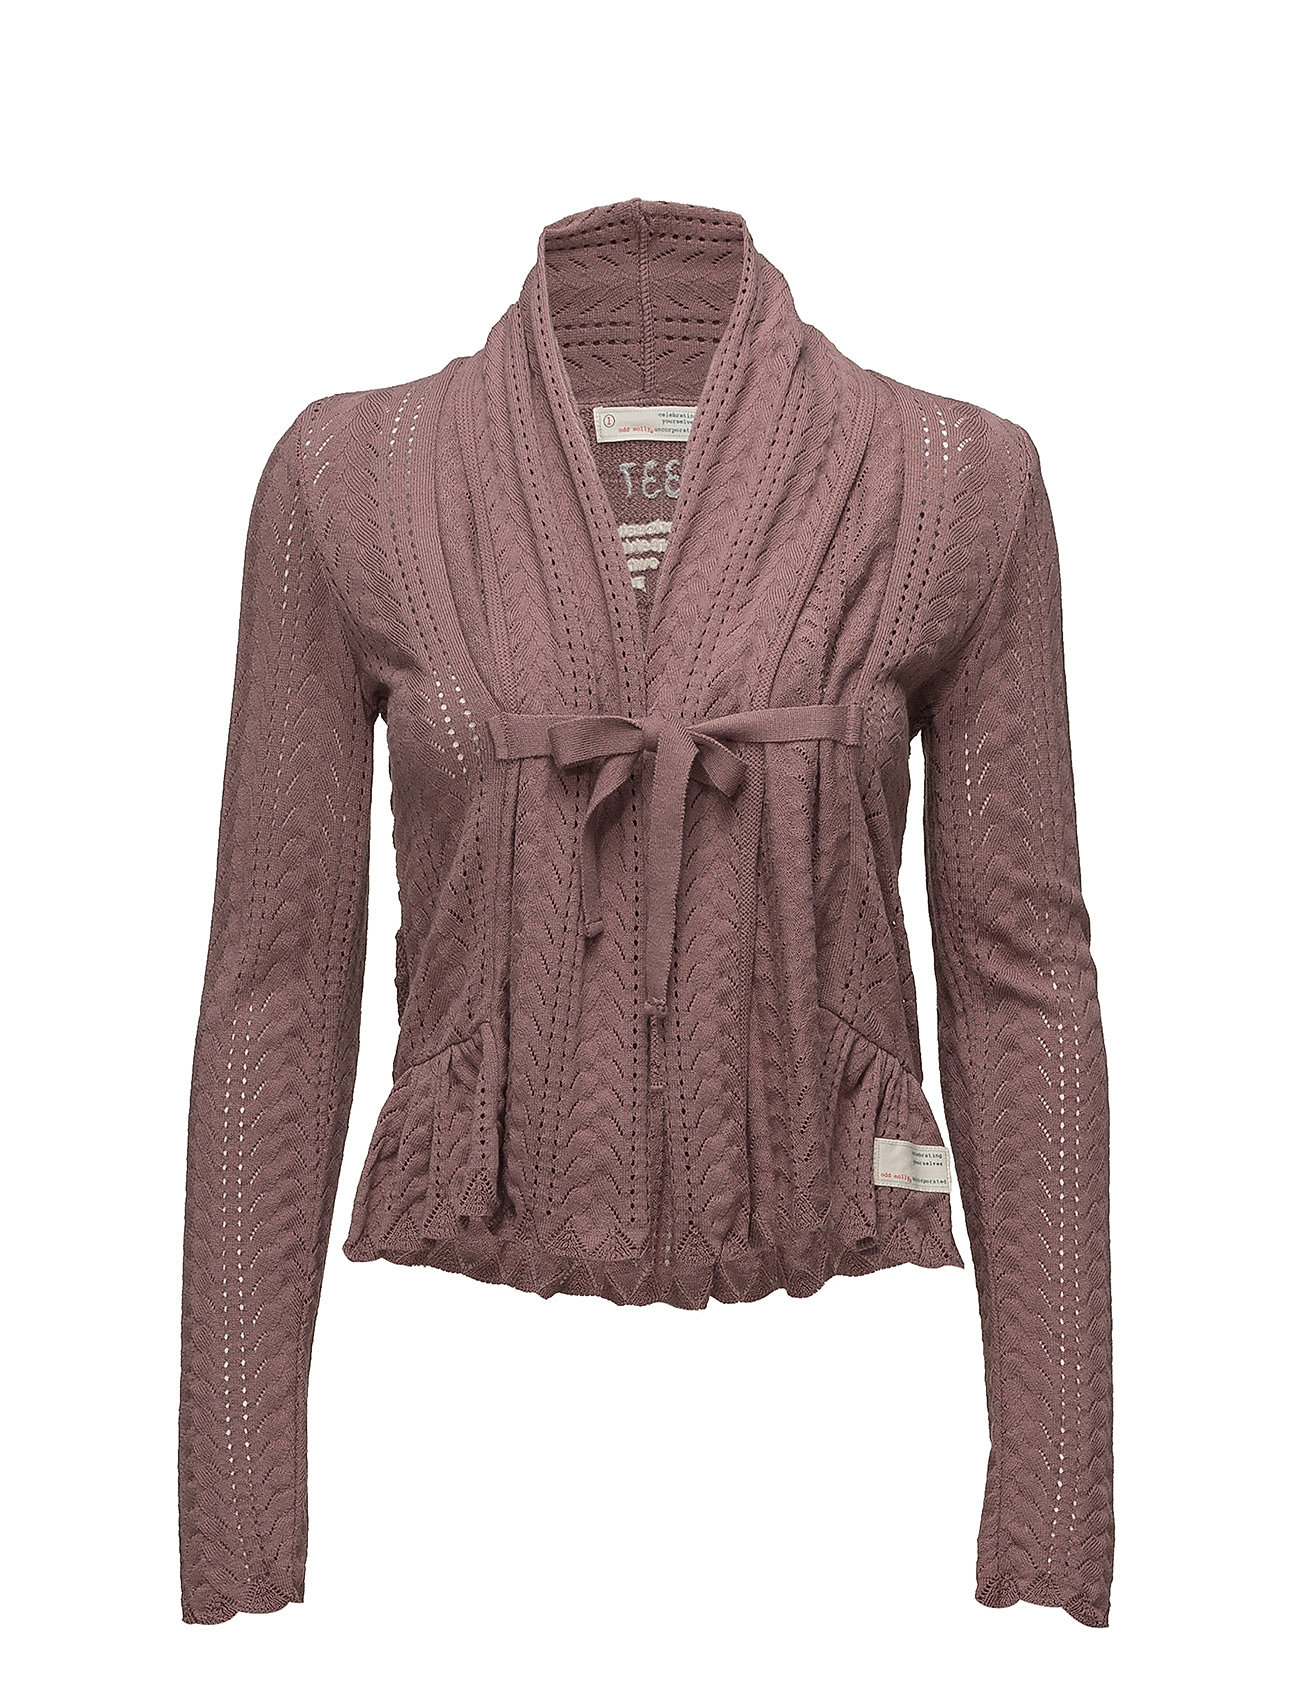 00e663fb Can-can Cardigan (Rose Taupe) (£95.40) - ODD MOLLY - | Boozt.com